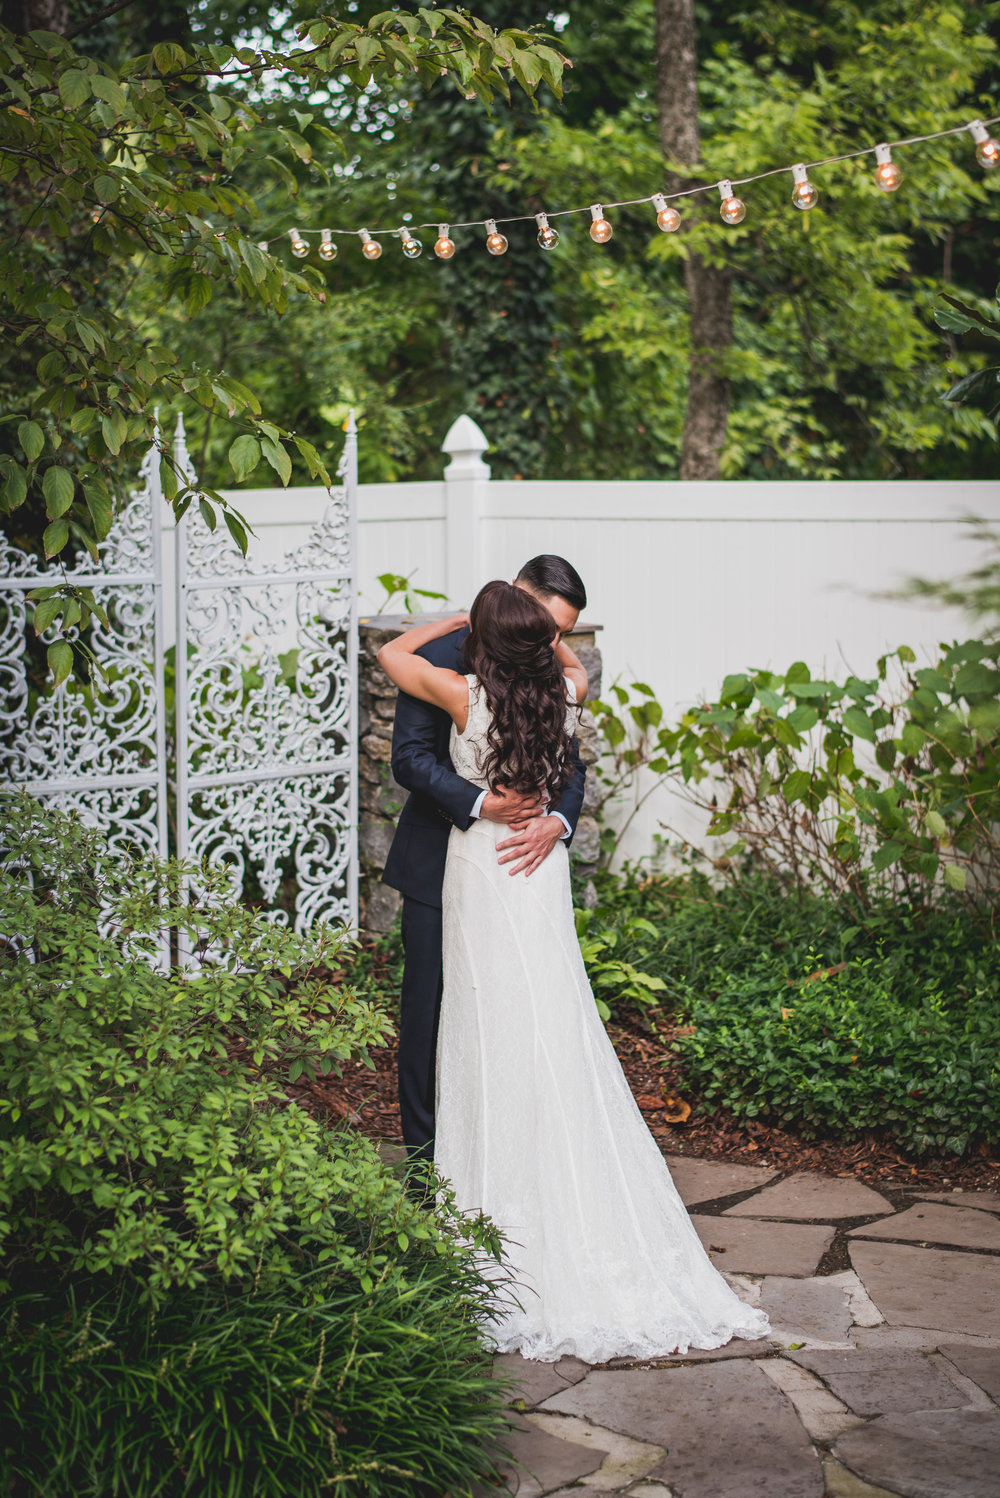 Nashville-Wedding-Photographer-CJsoffthesquare 53.jpg